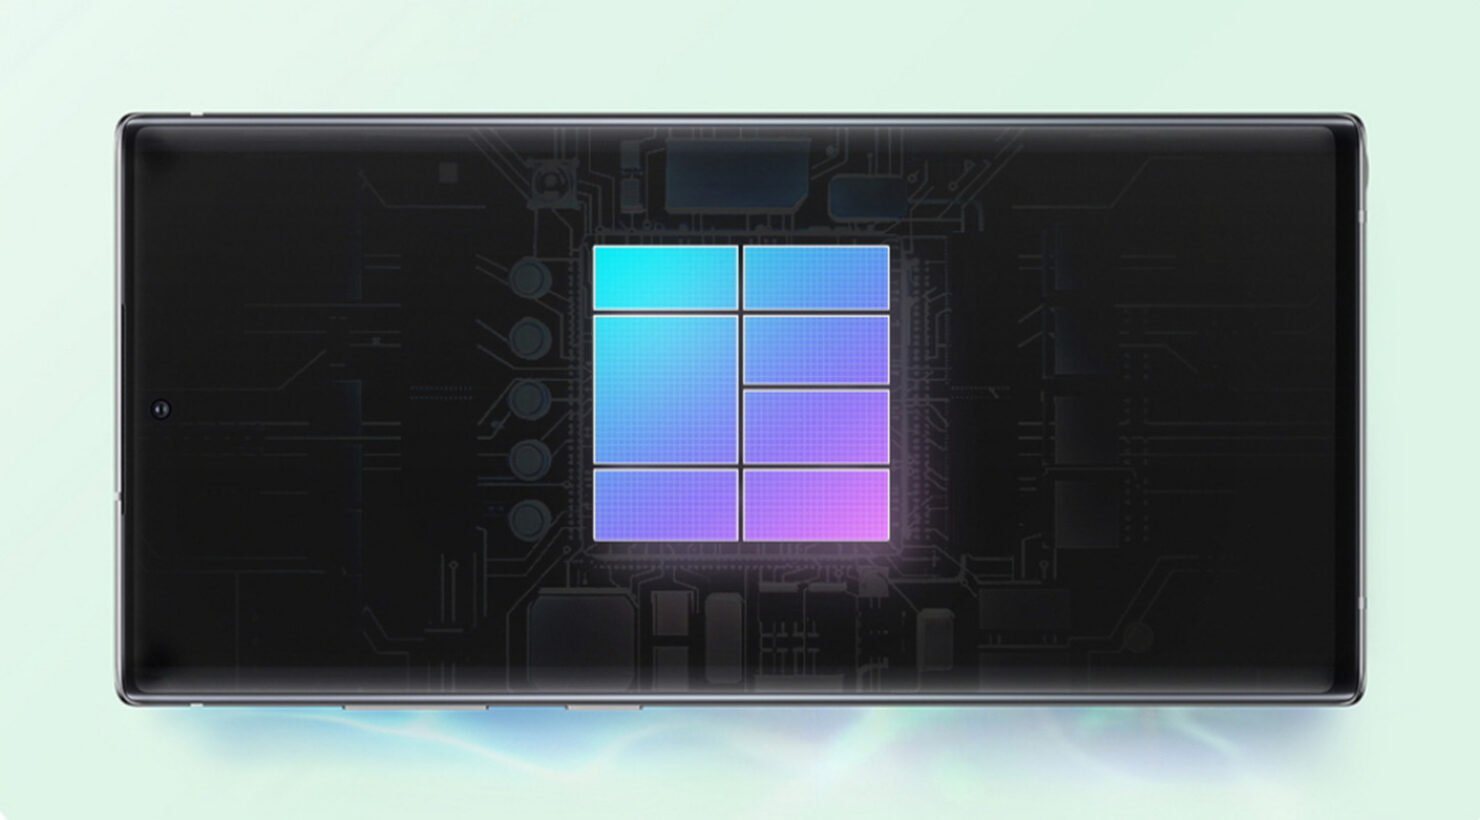 Samsung Working to Bring ARM Chips Based on the Upcoming Exynos 1000 to Windows PCs